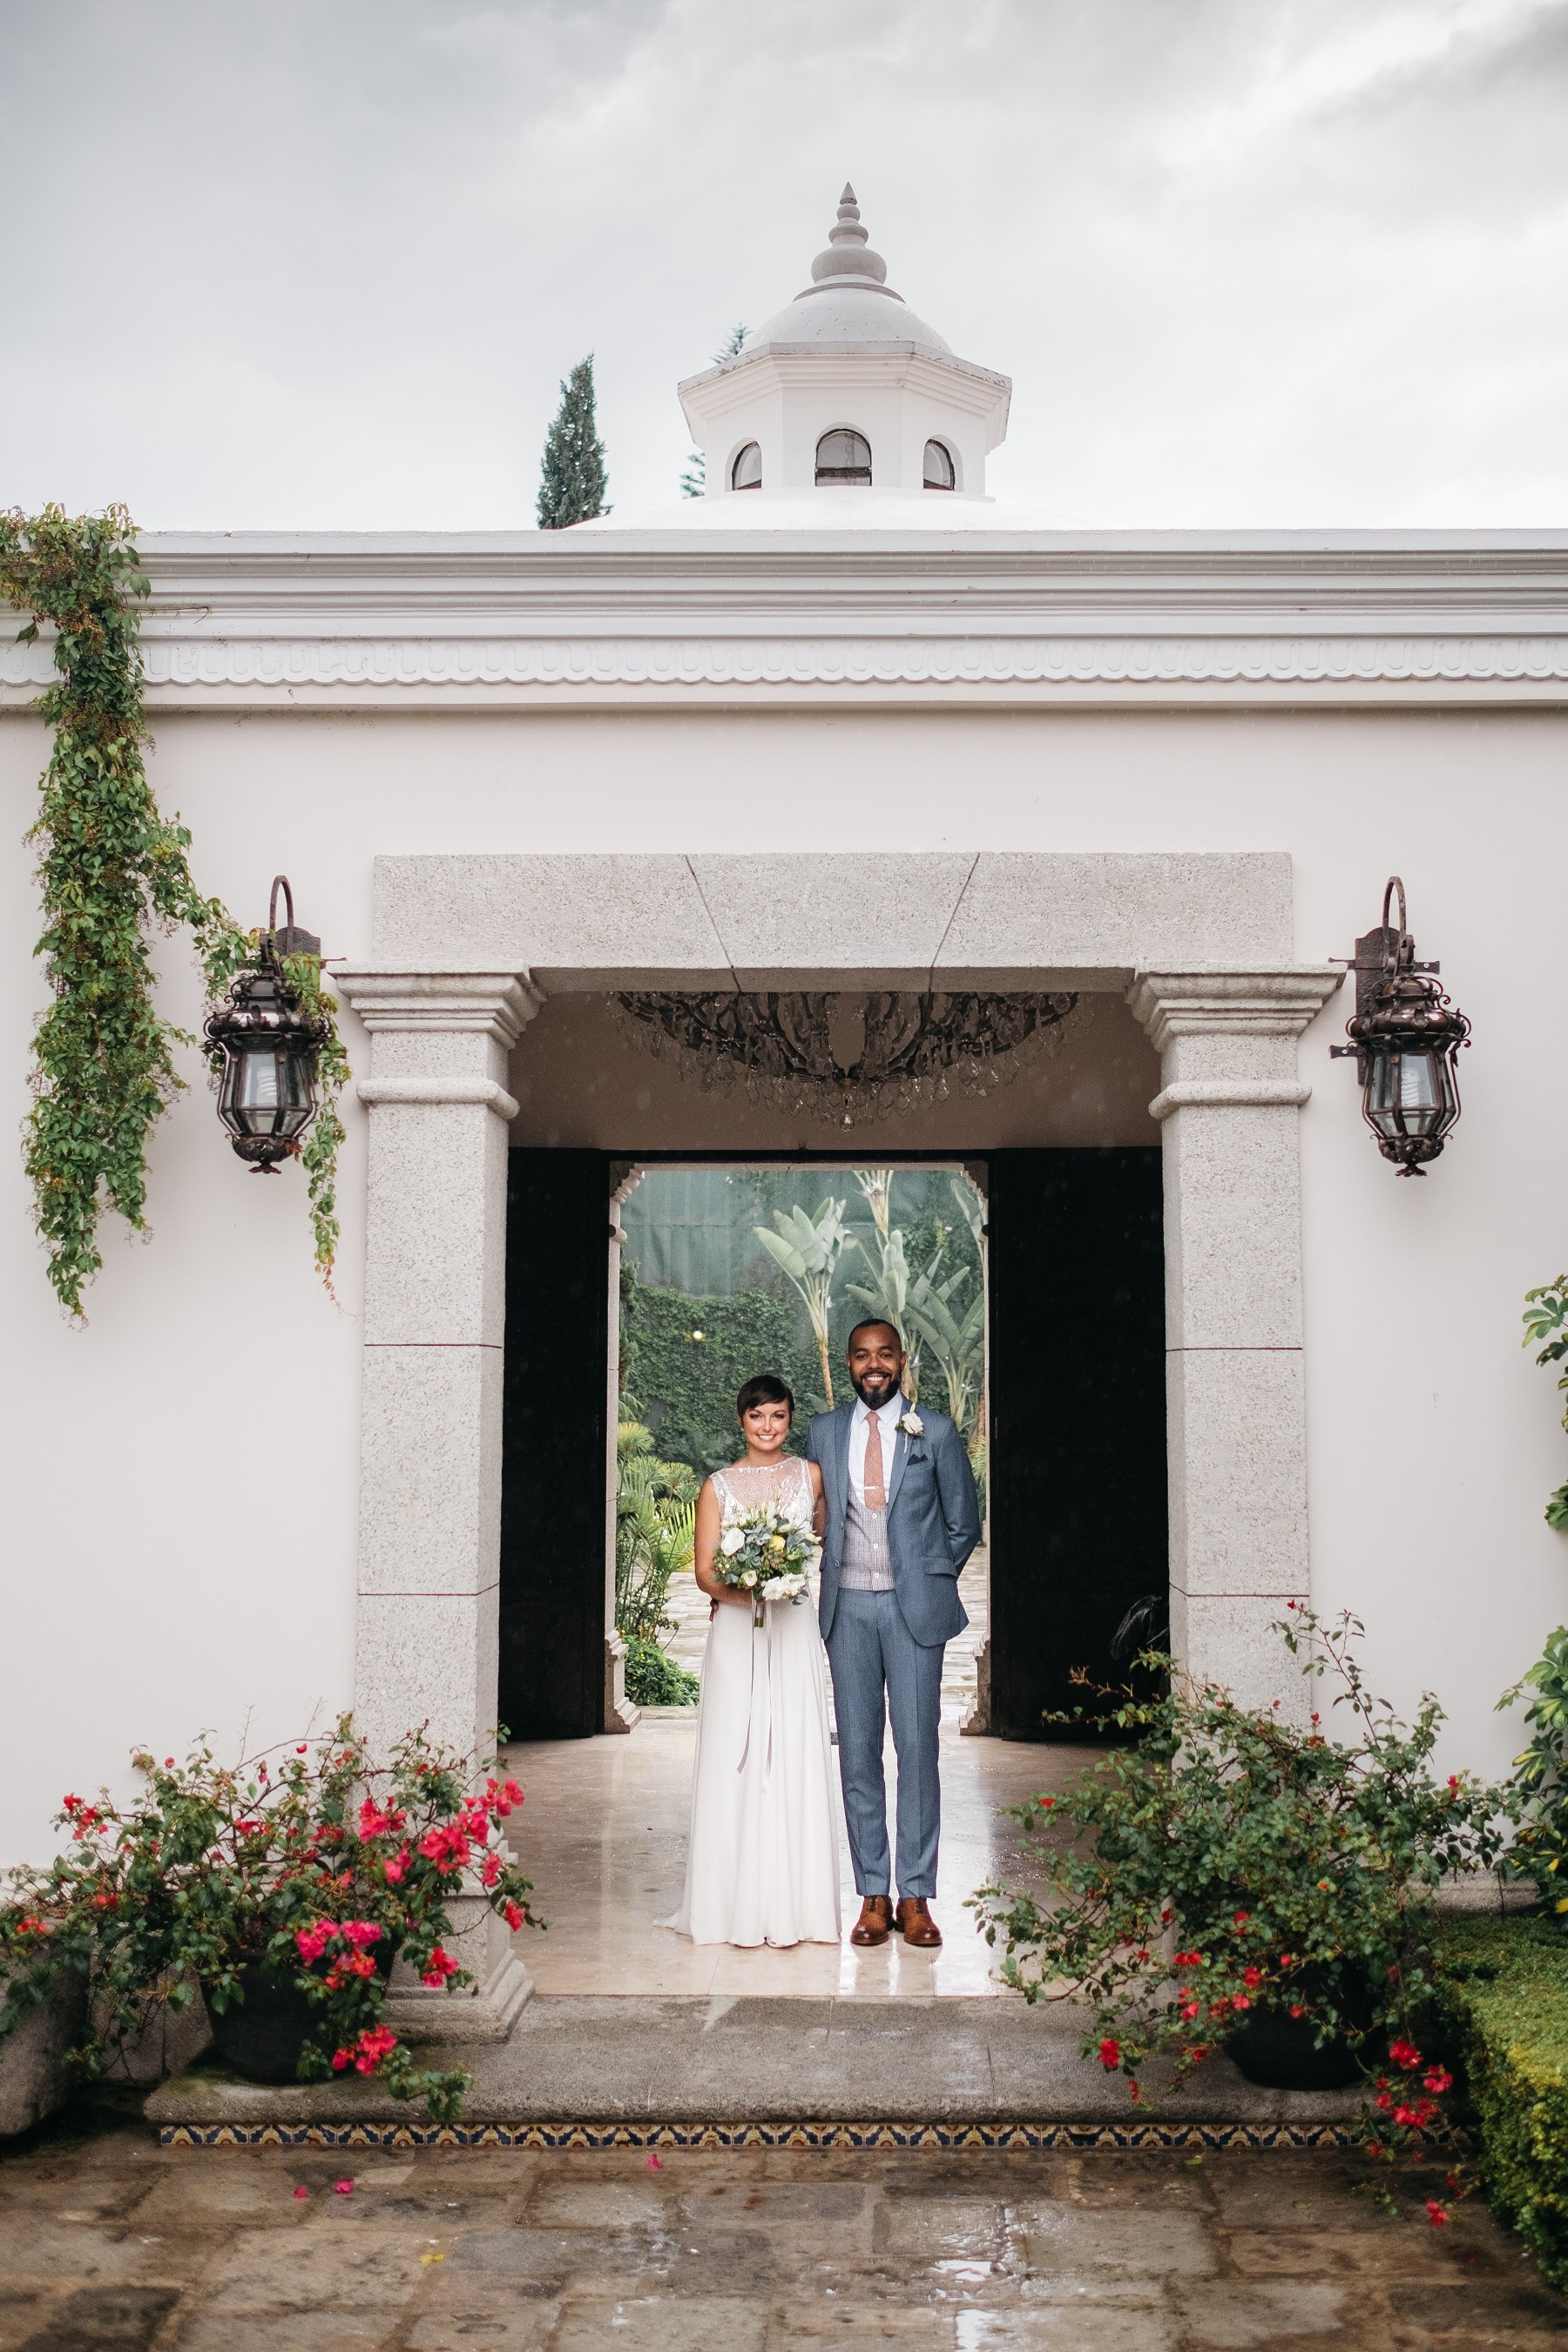 Wedding Photo at Pensativo Hotel Antigua Guatemala